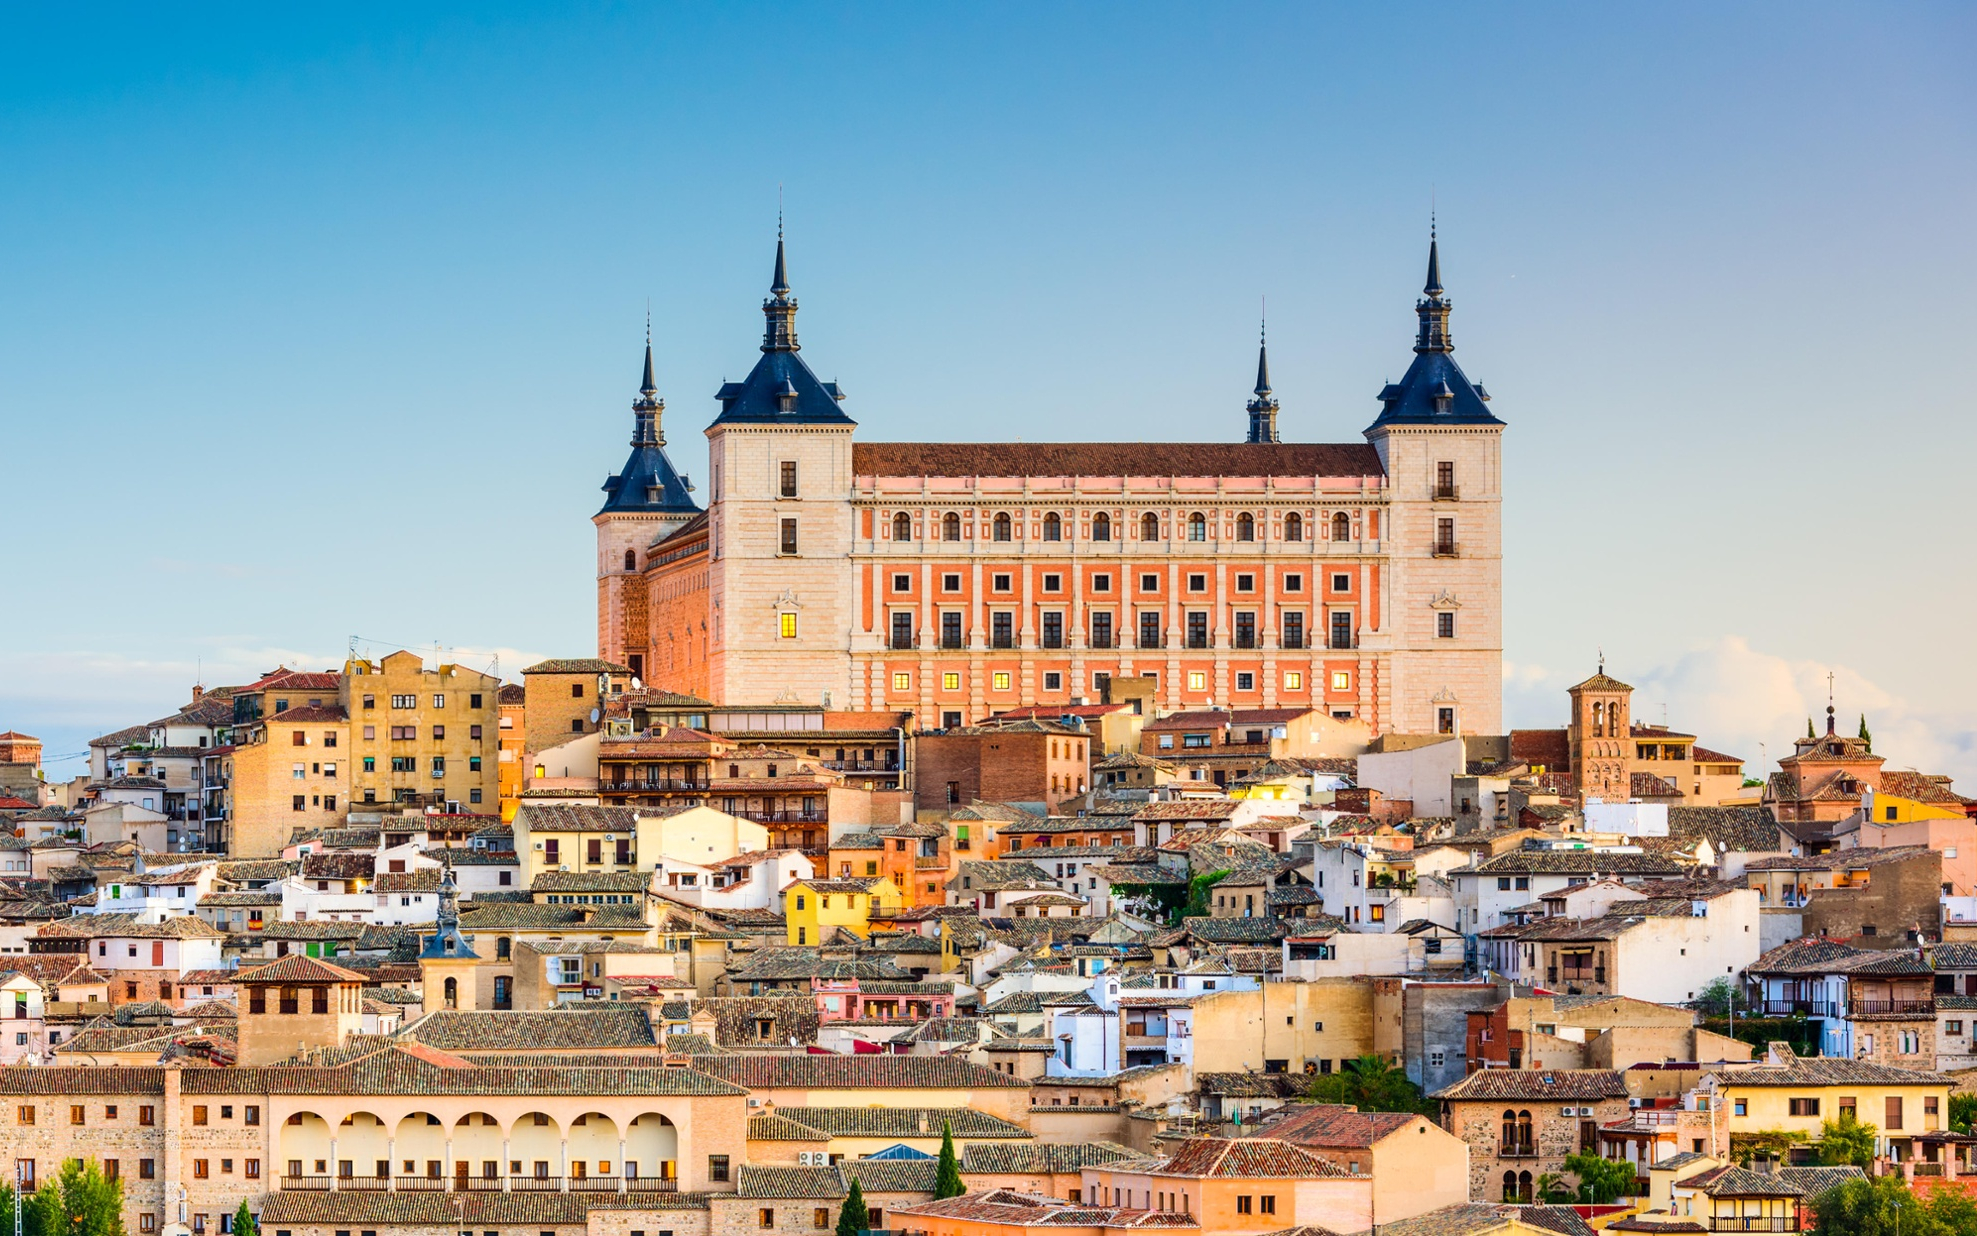 88d9f86a 3f5a 4aa1 8efb 293558a897bd 9394 madrid full day tour to toledo with traditional lunch 03